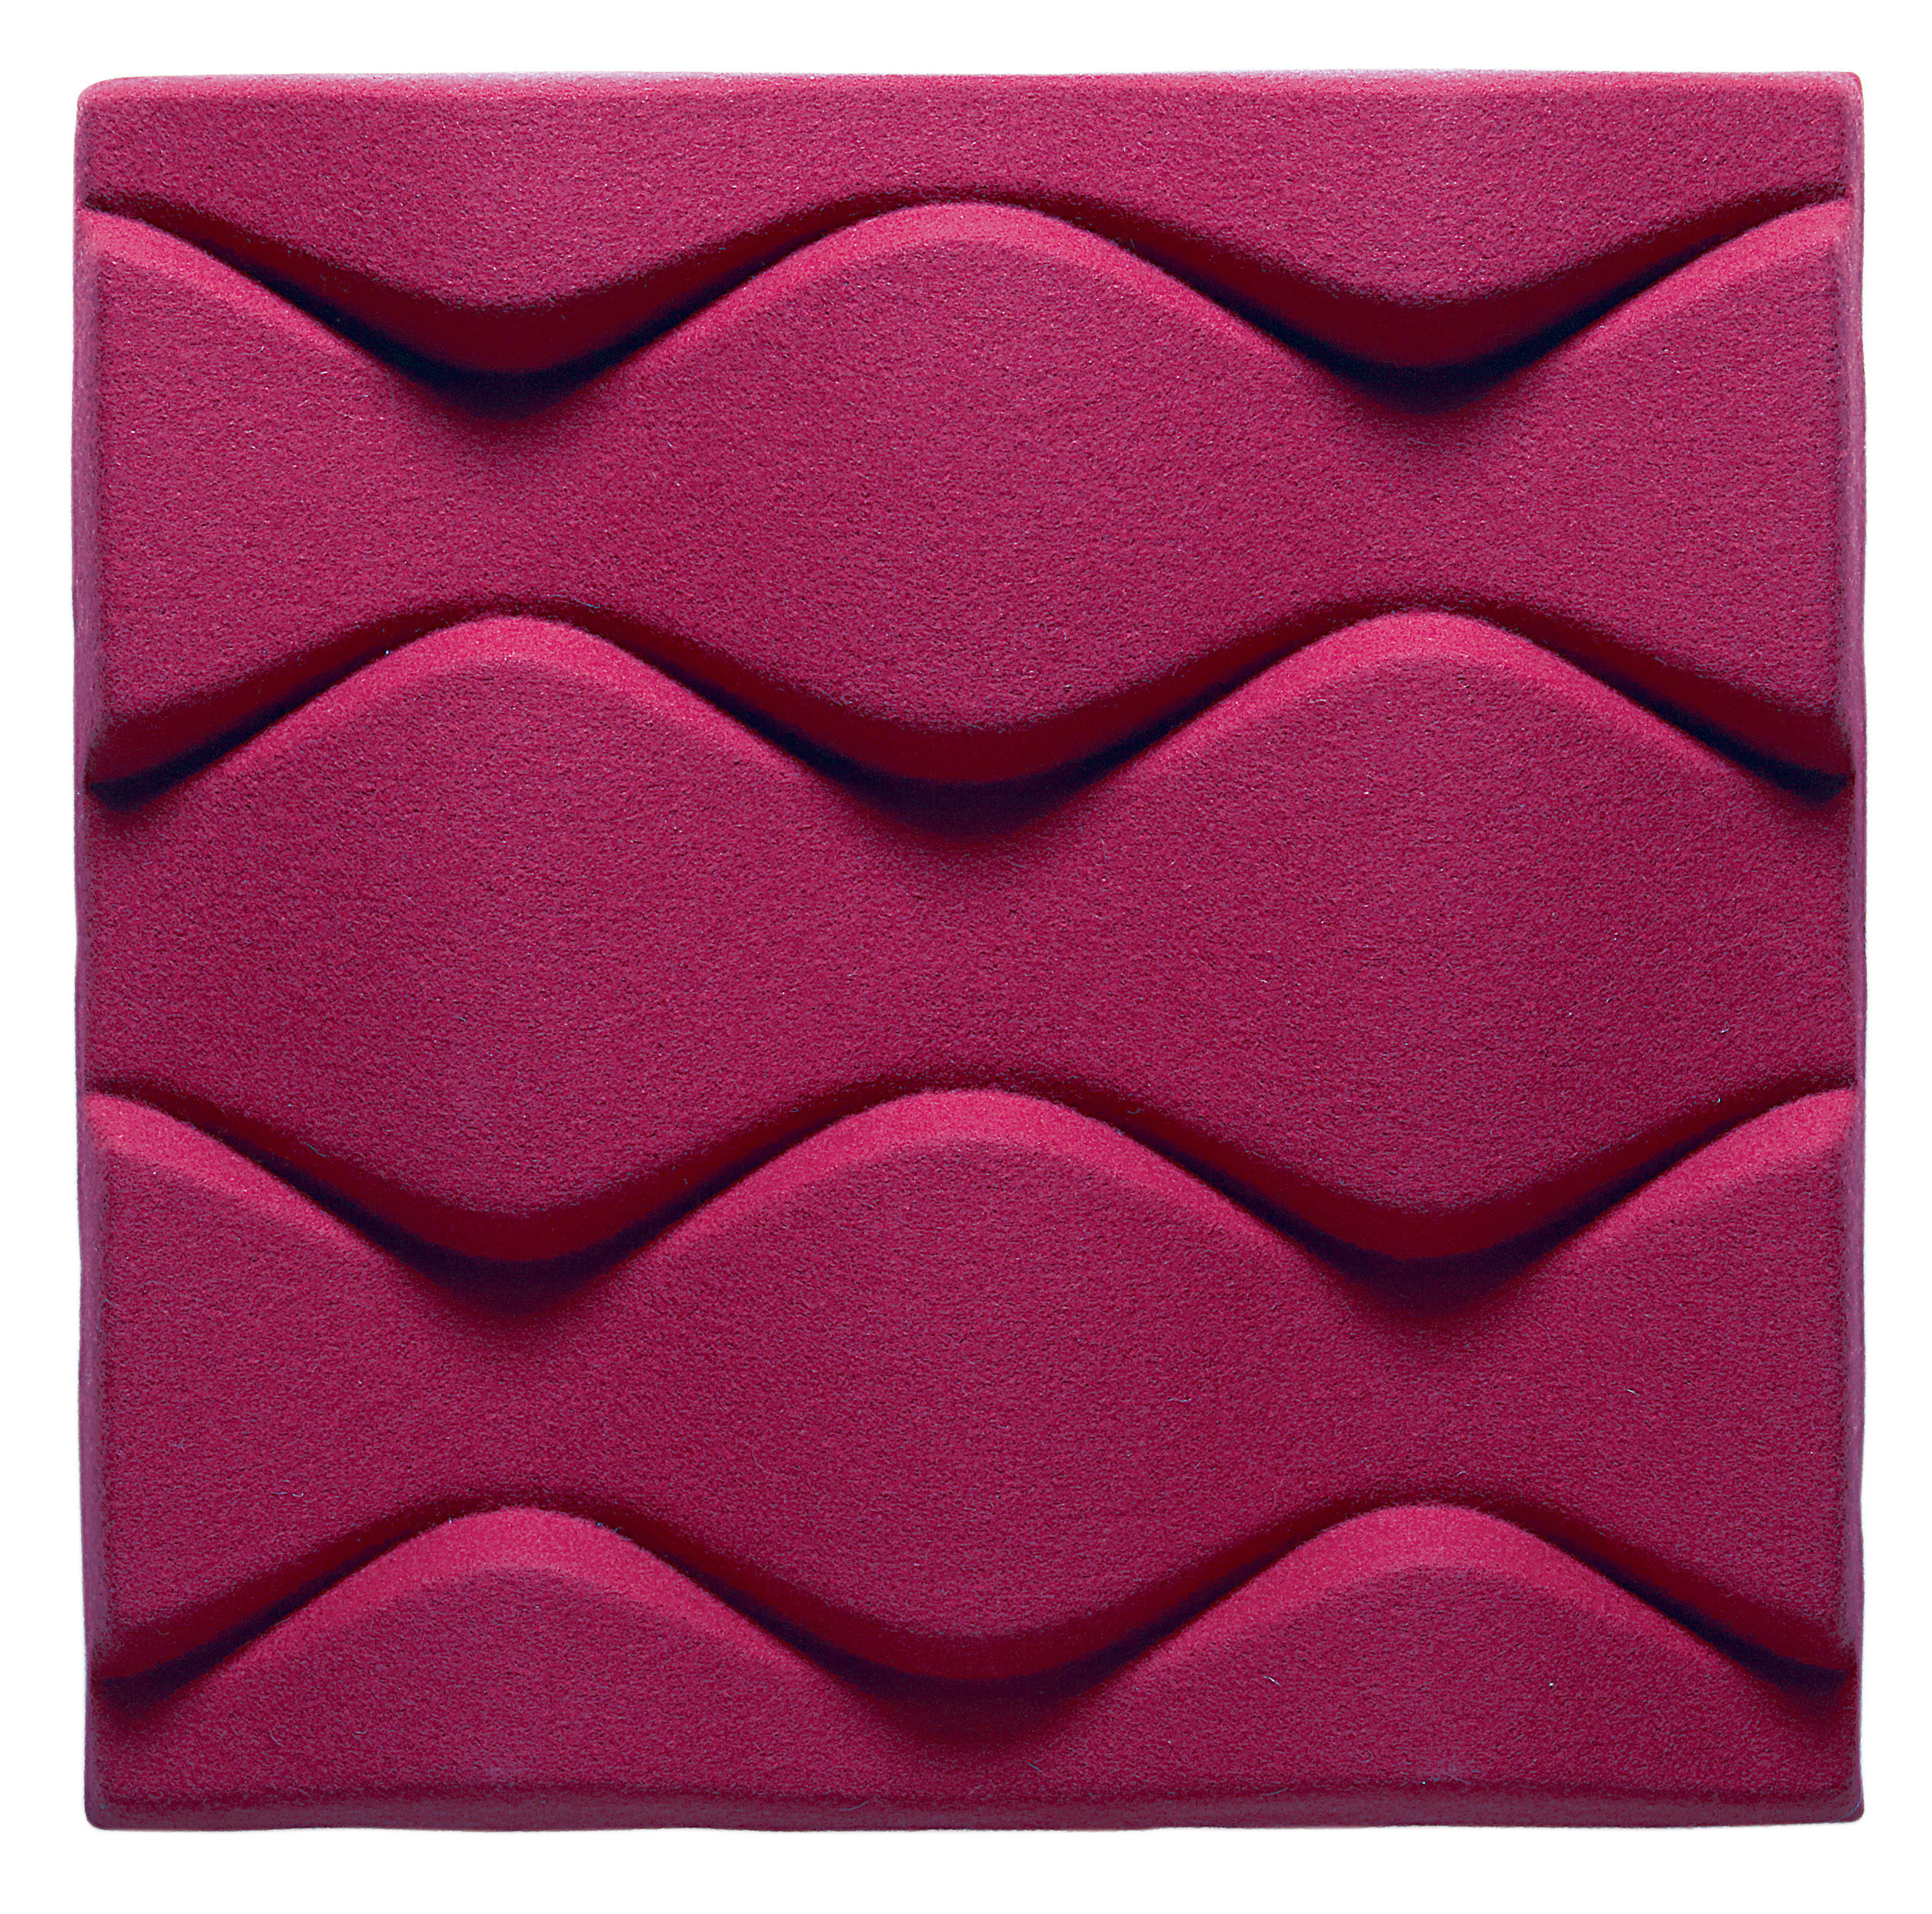 Acoustic Wall Panel Soundwave Flo By Offecct Pink Made